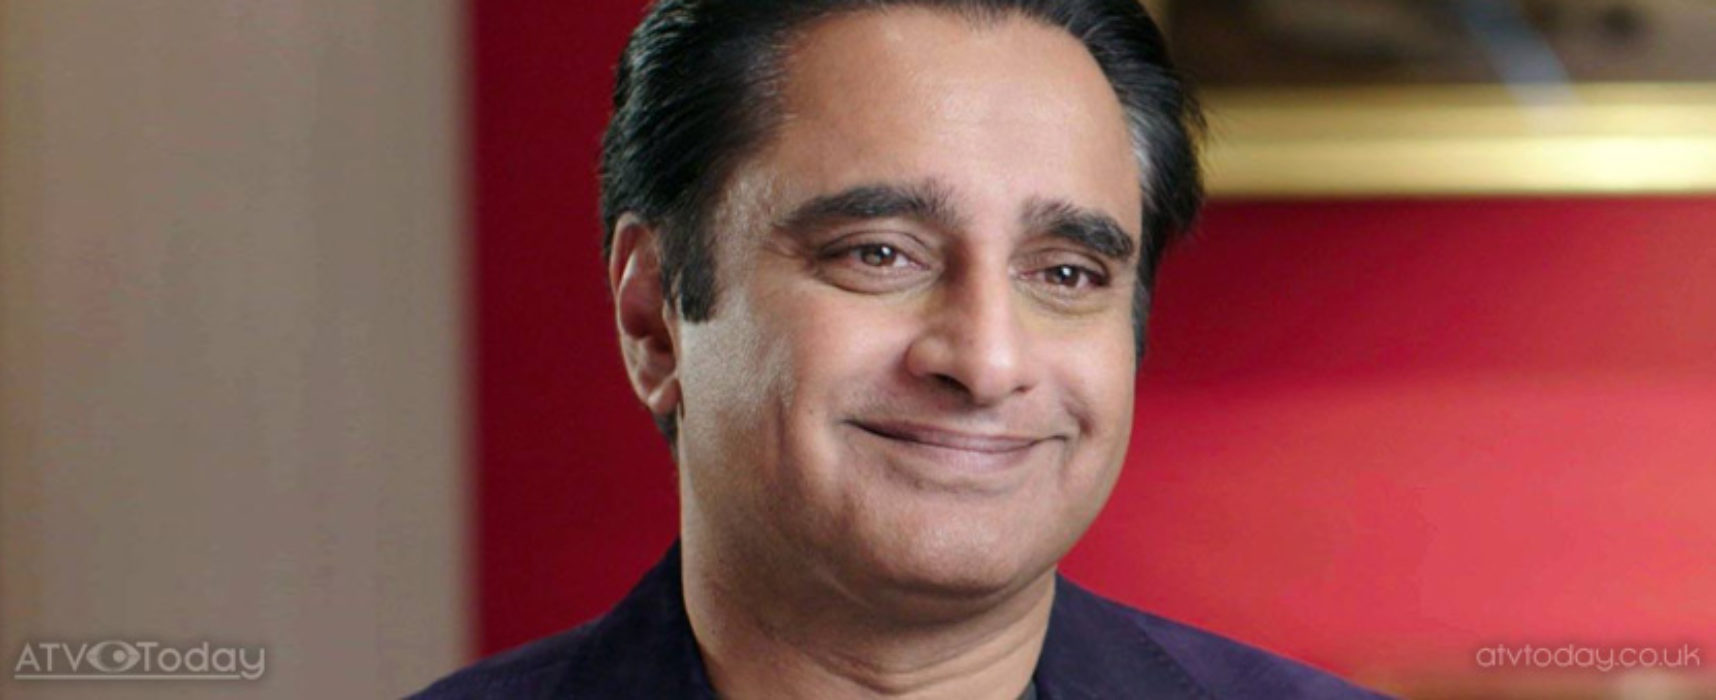 Sanjeev Bhaskar to host The Switch for ITV